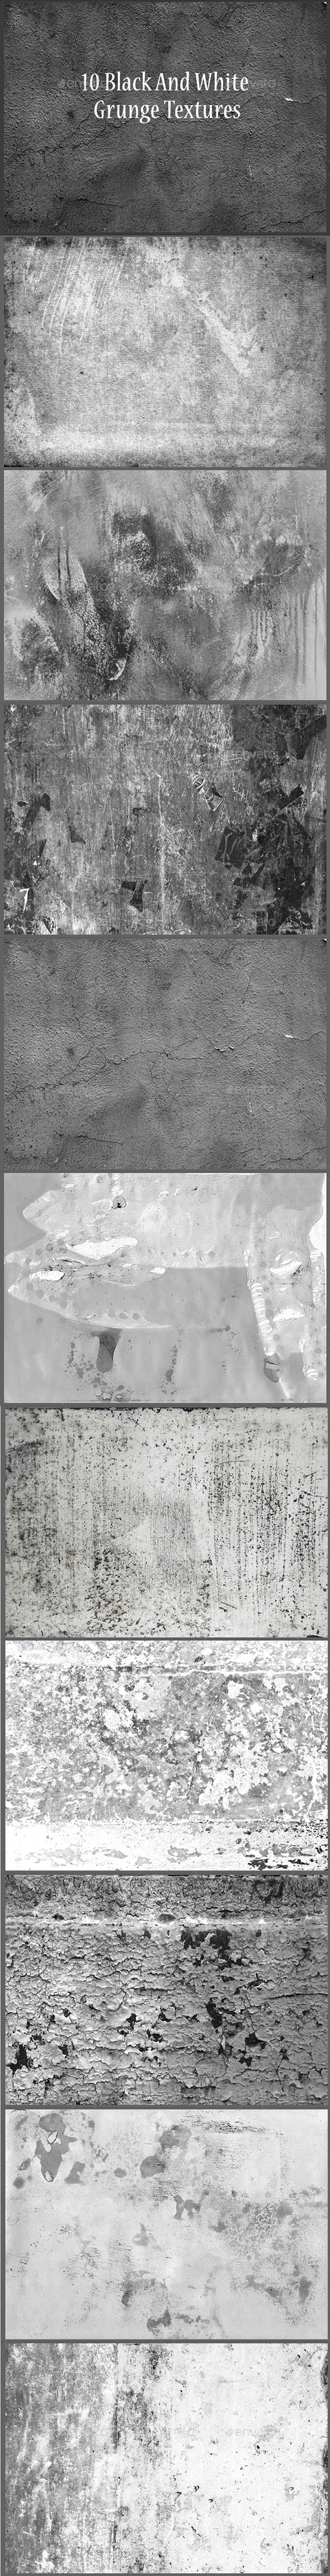 10 Black And White Grunge Textures - Textures